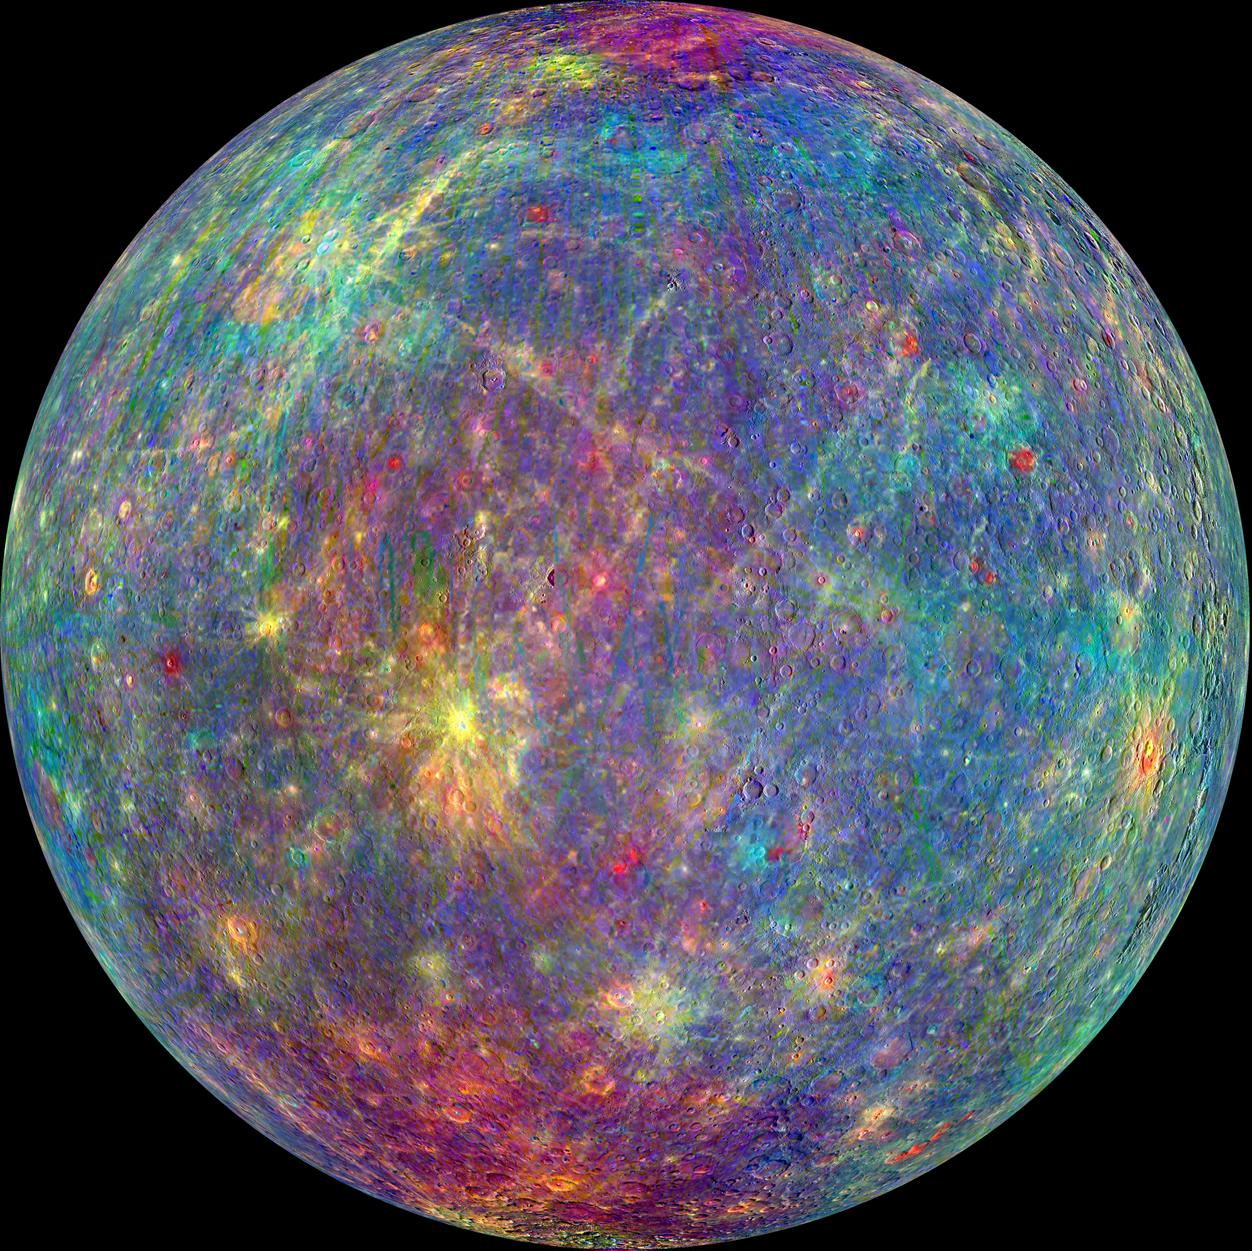 Mercury: The Swift Planet | Astronomy.com